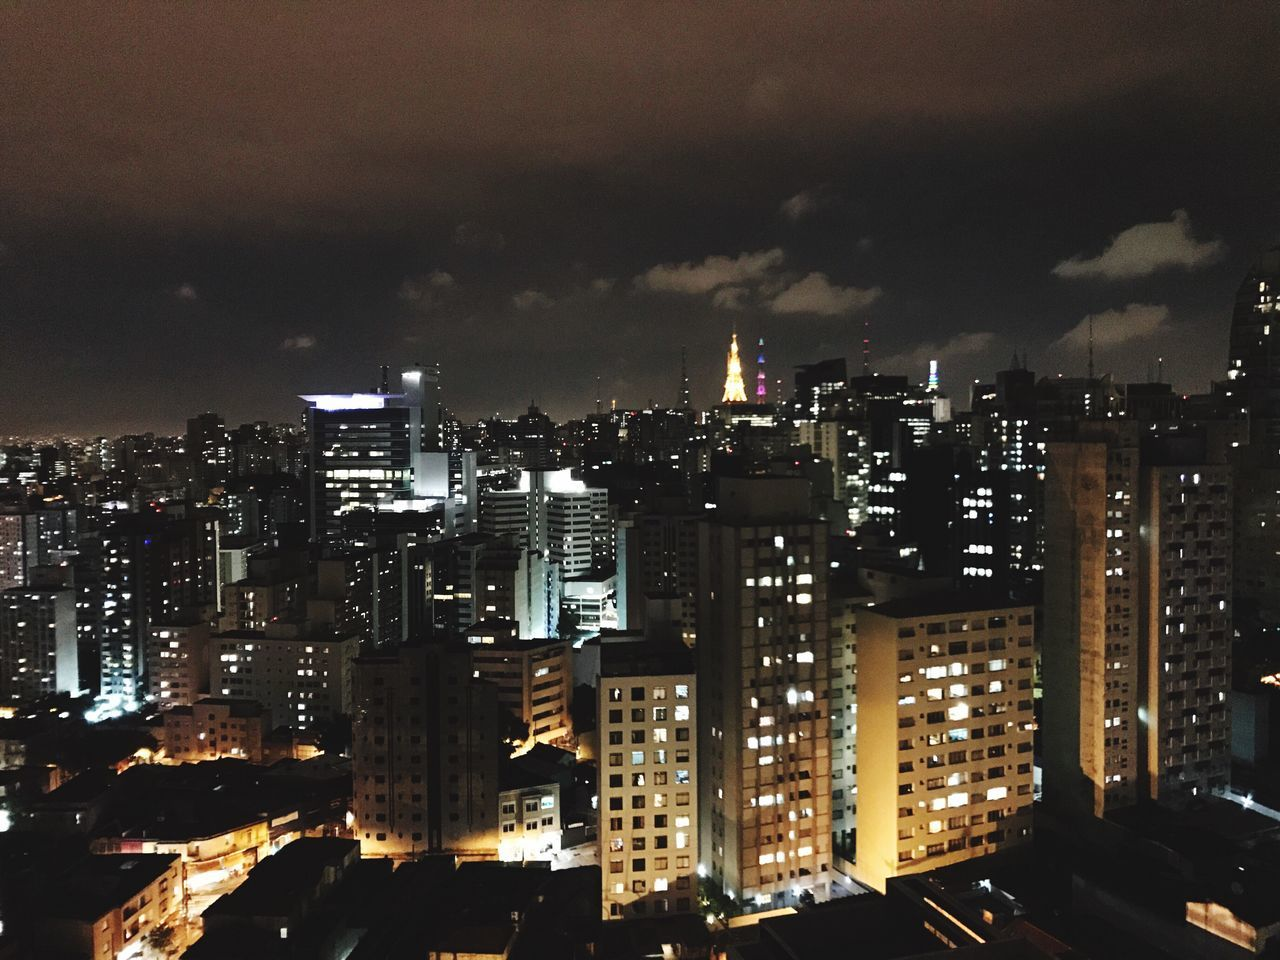 illuminated, architecture, cityscape, city, building exterior, night, modern, skyscraper, built structure, sky, growth, no people, outdoors